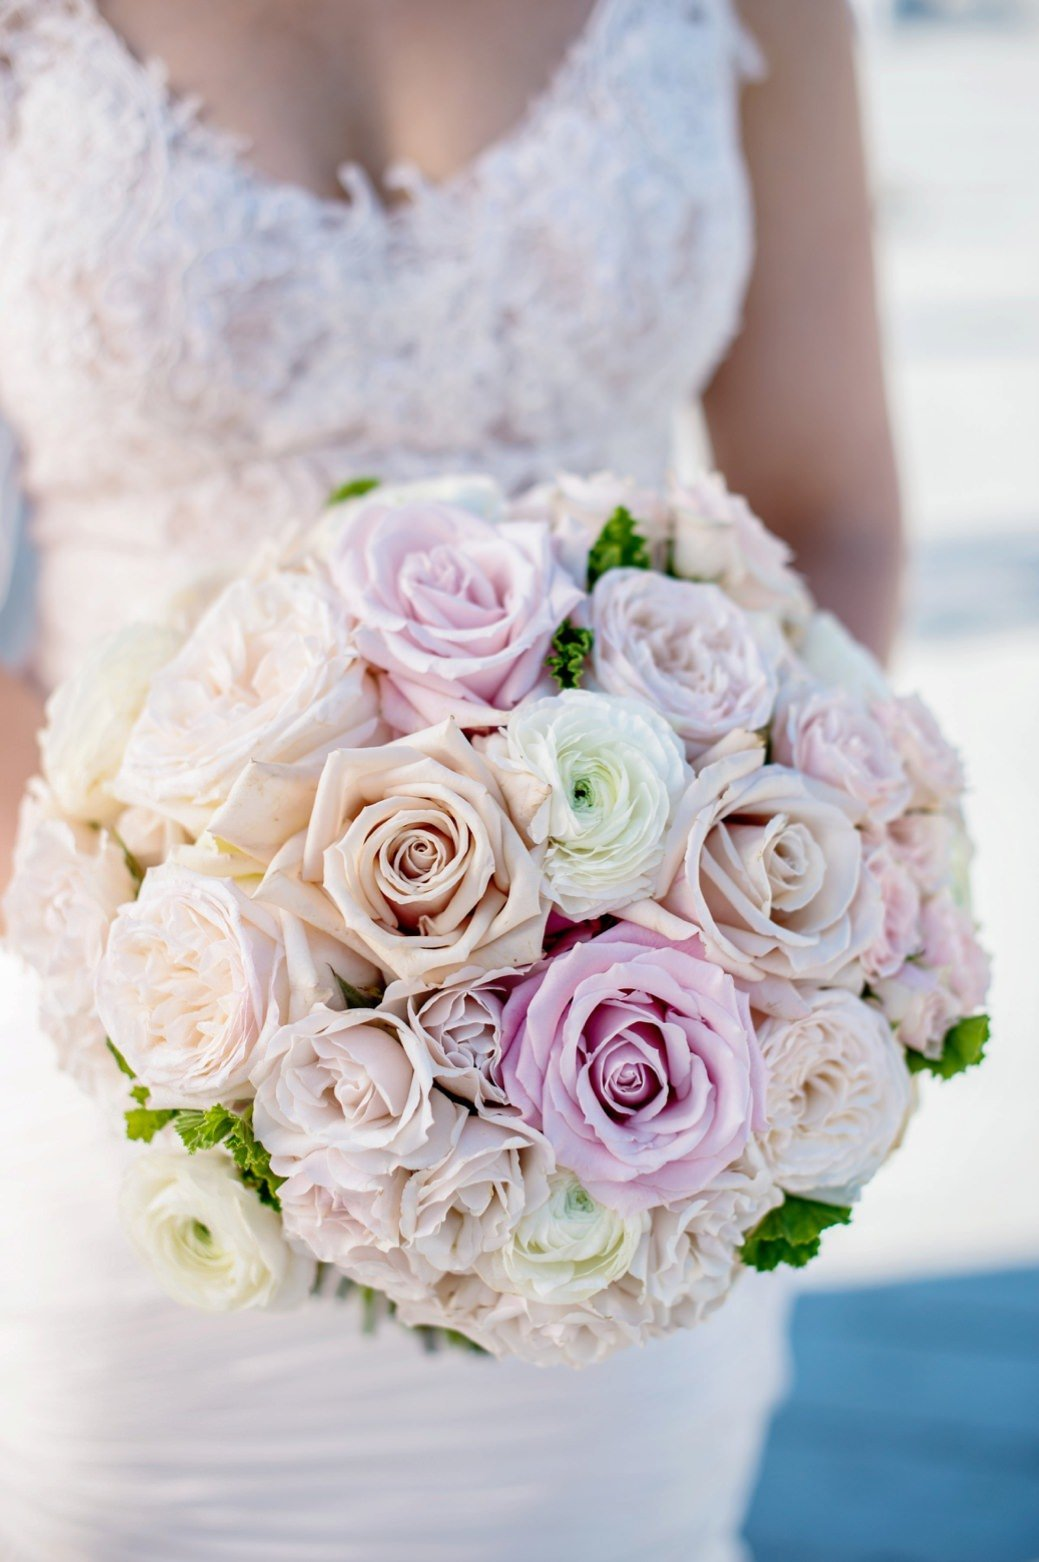 Classic bouquet of roses in purple, blush pink and ivory